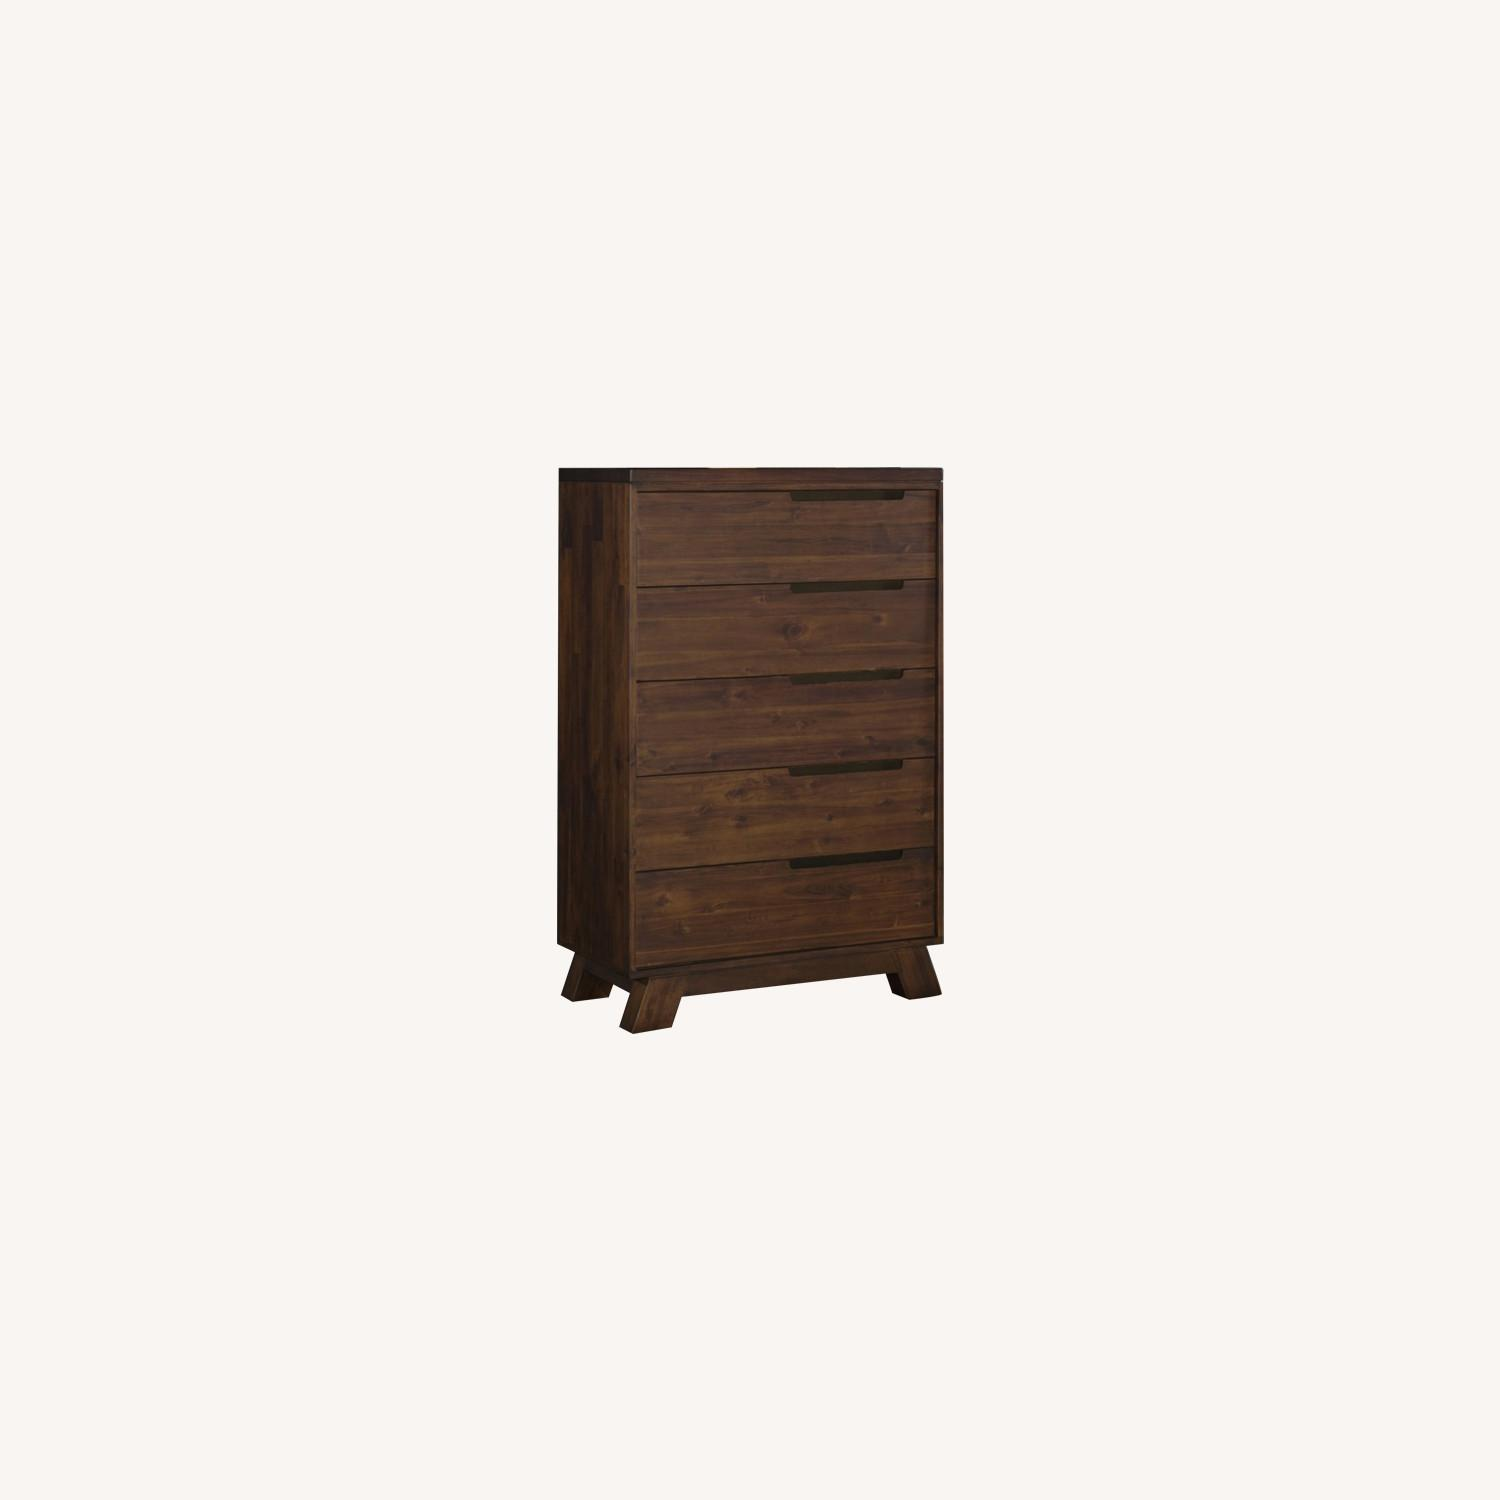 Modus Furniture Solid Wood 5 Drawer Chest - image-0